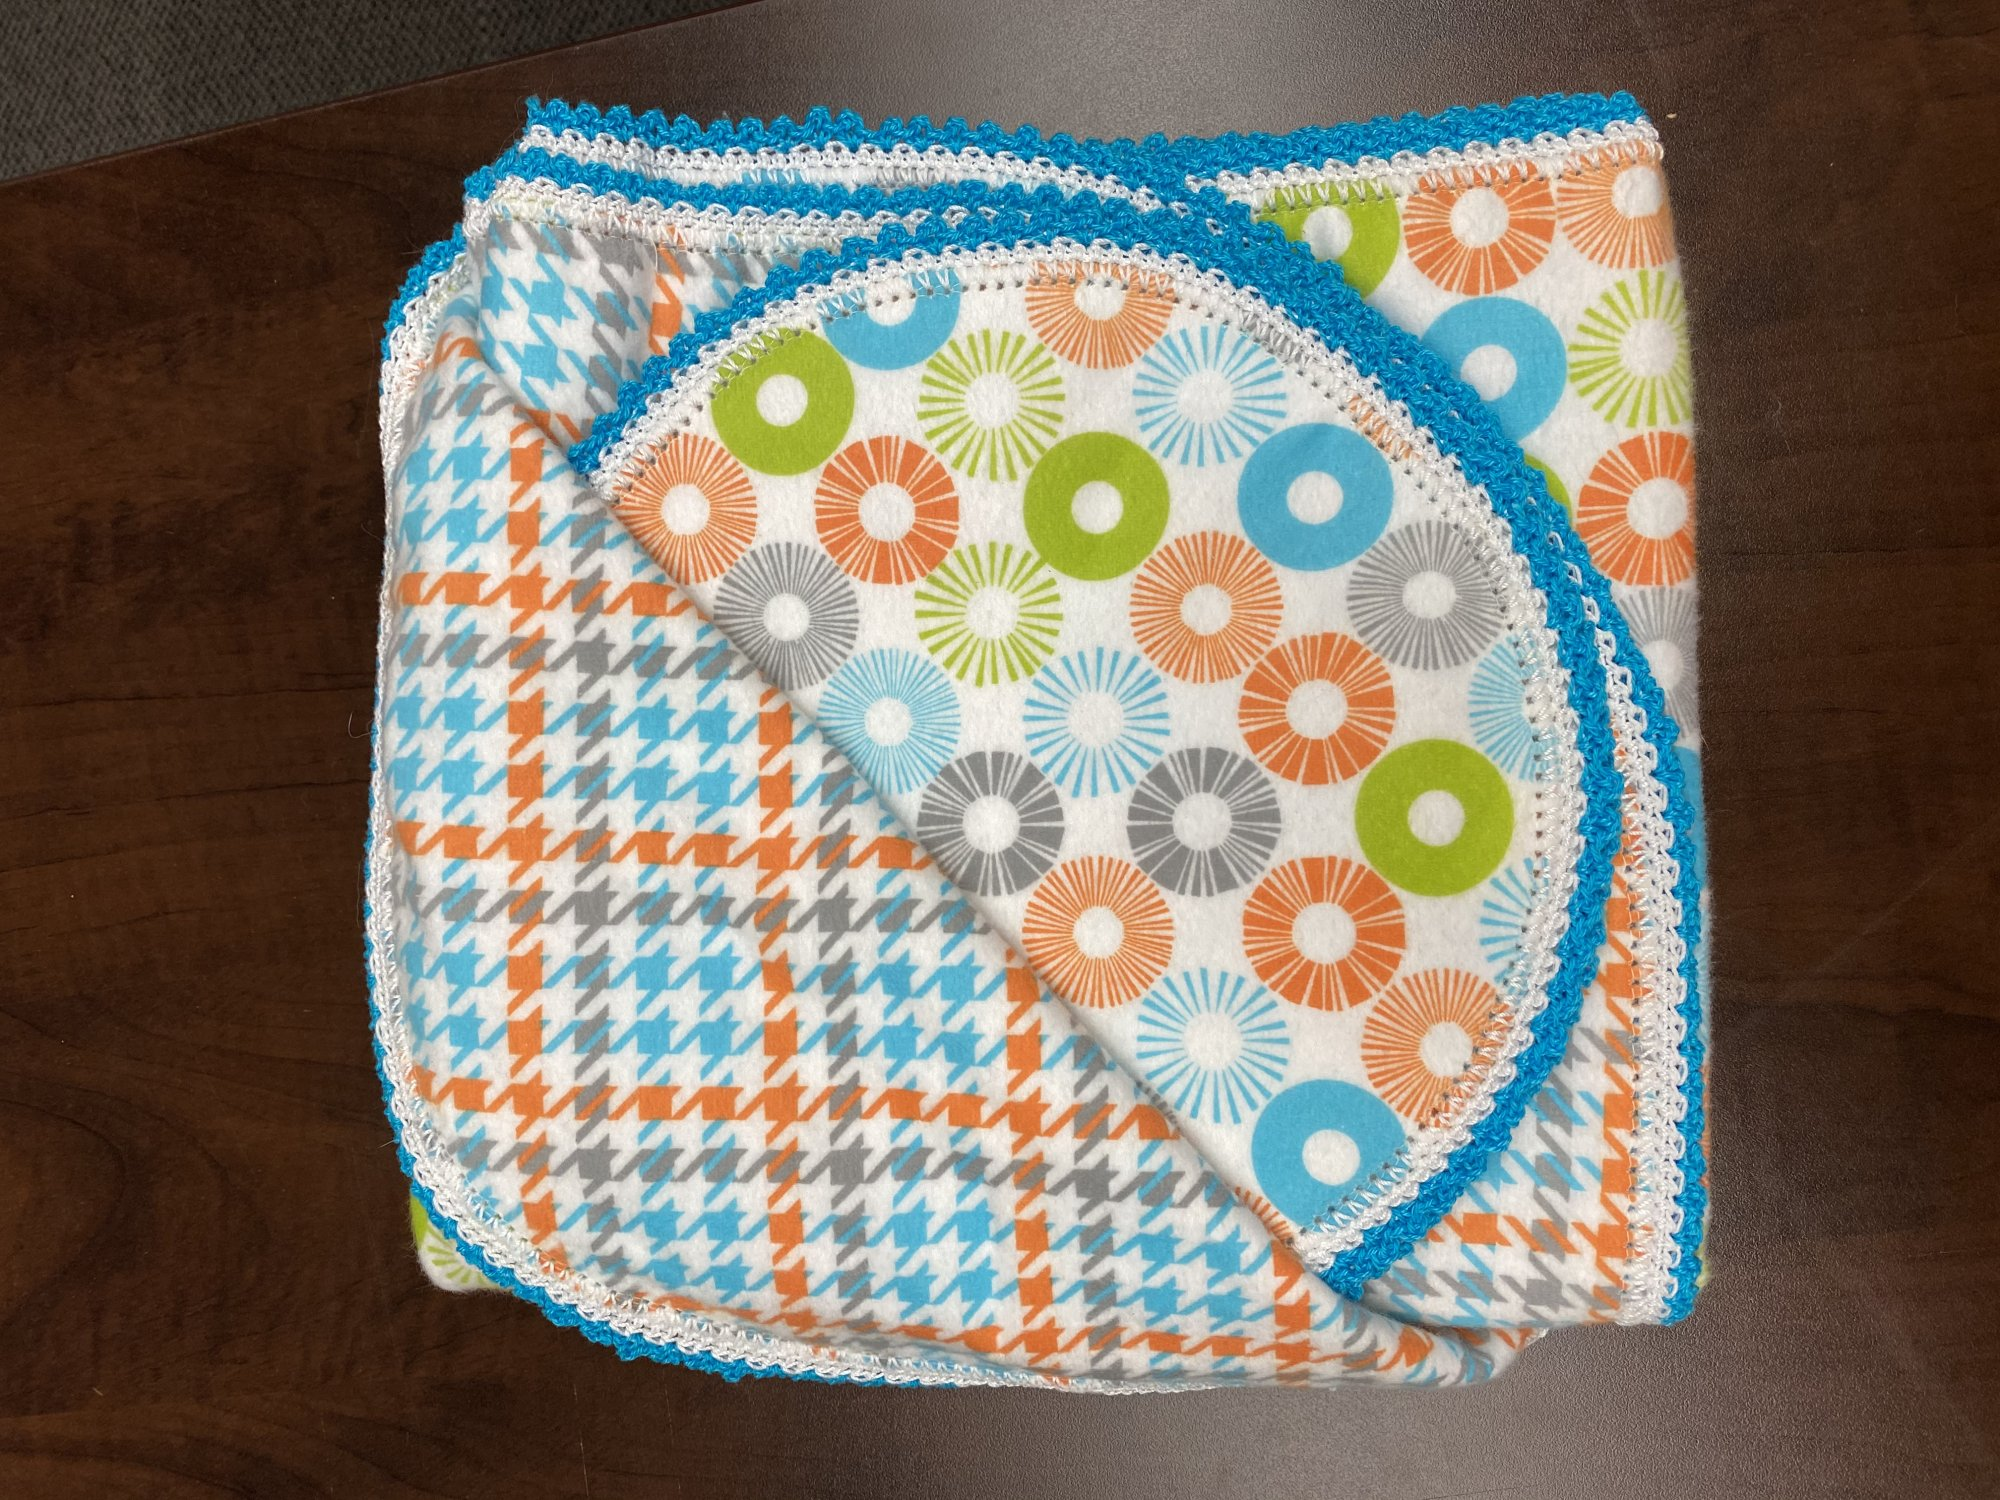 Crocheted Receiving Blanket w/ Burp Cloth - Orange, Blue, and Grey Spokes with Houndstooth